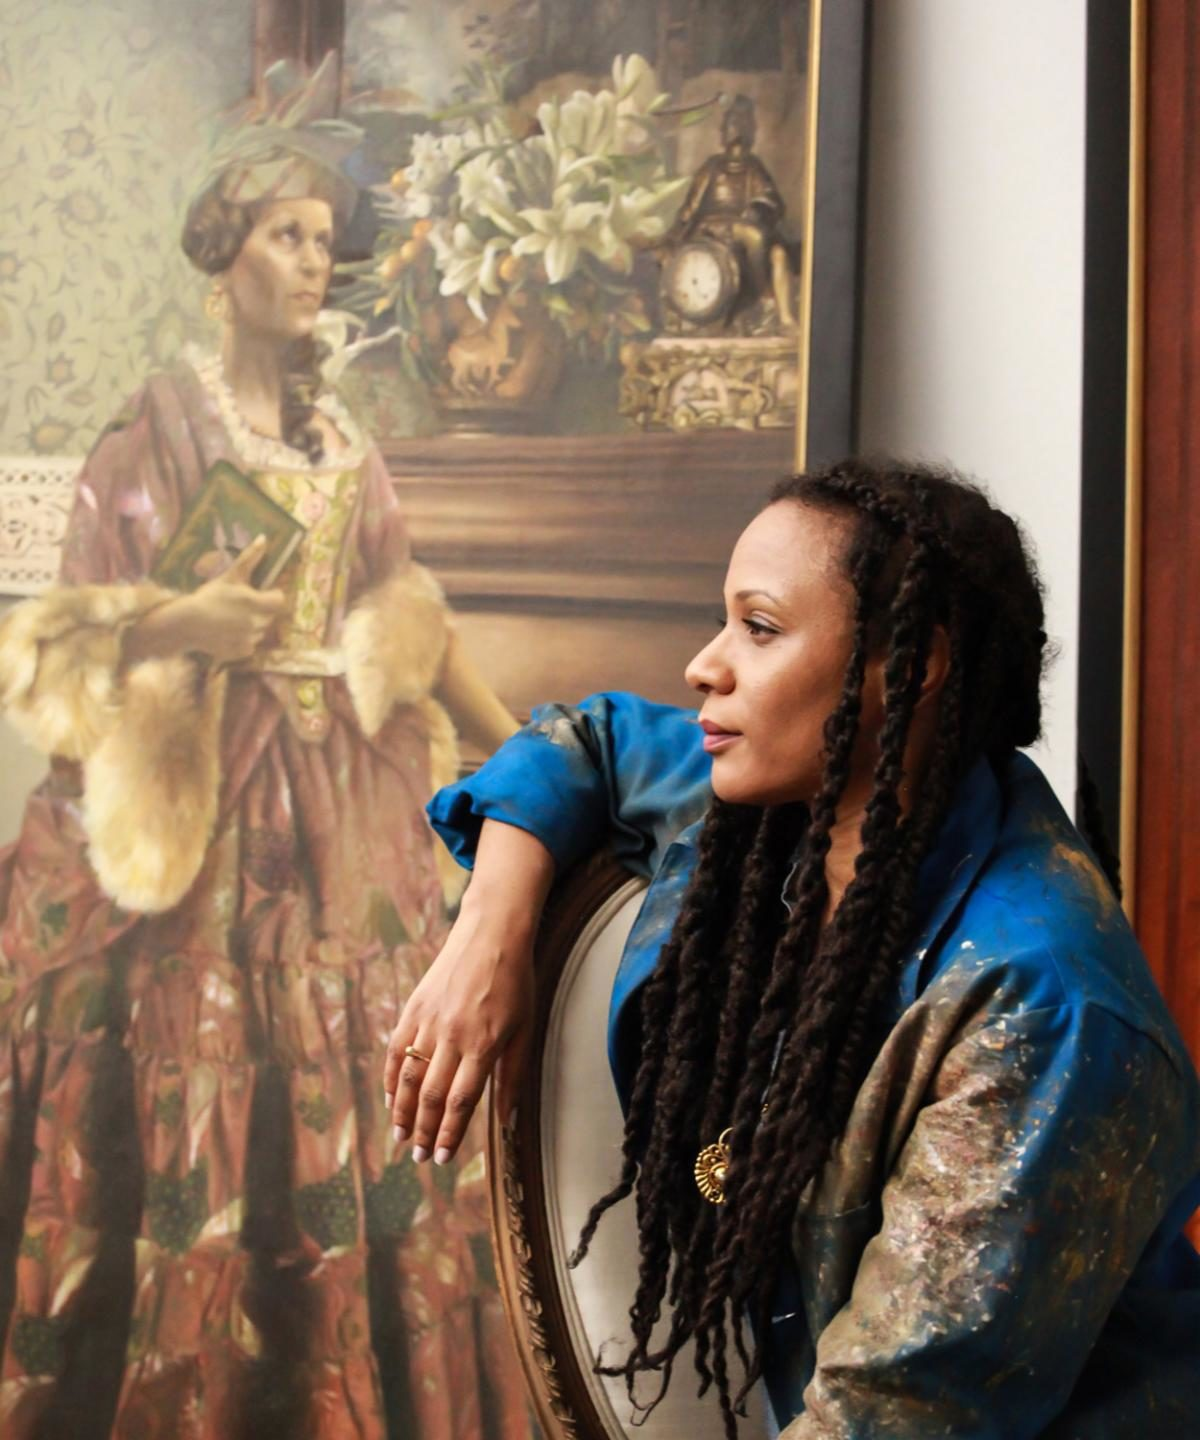 An image of Elizabeth Colomba standing next to a painting.